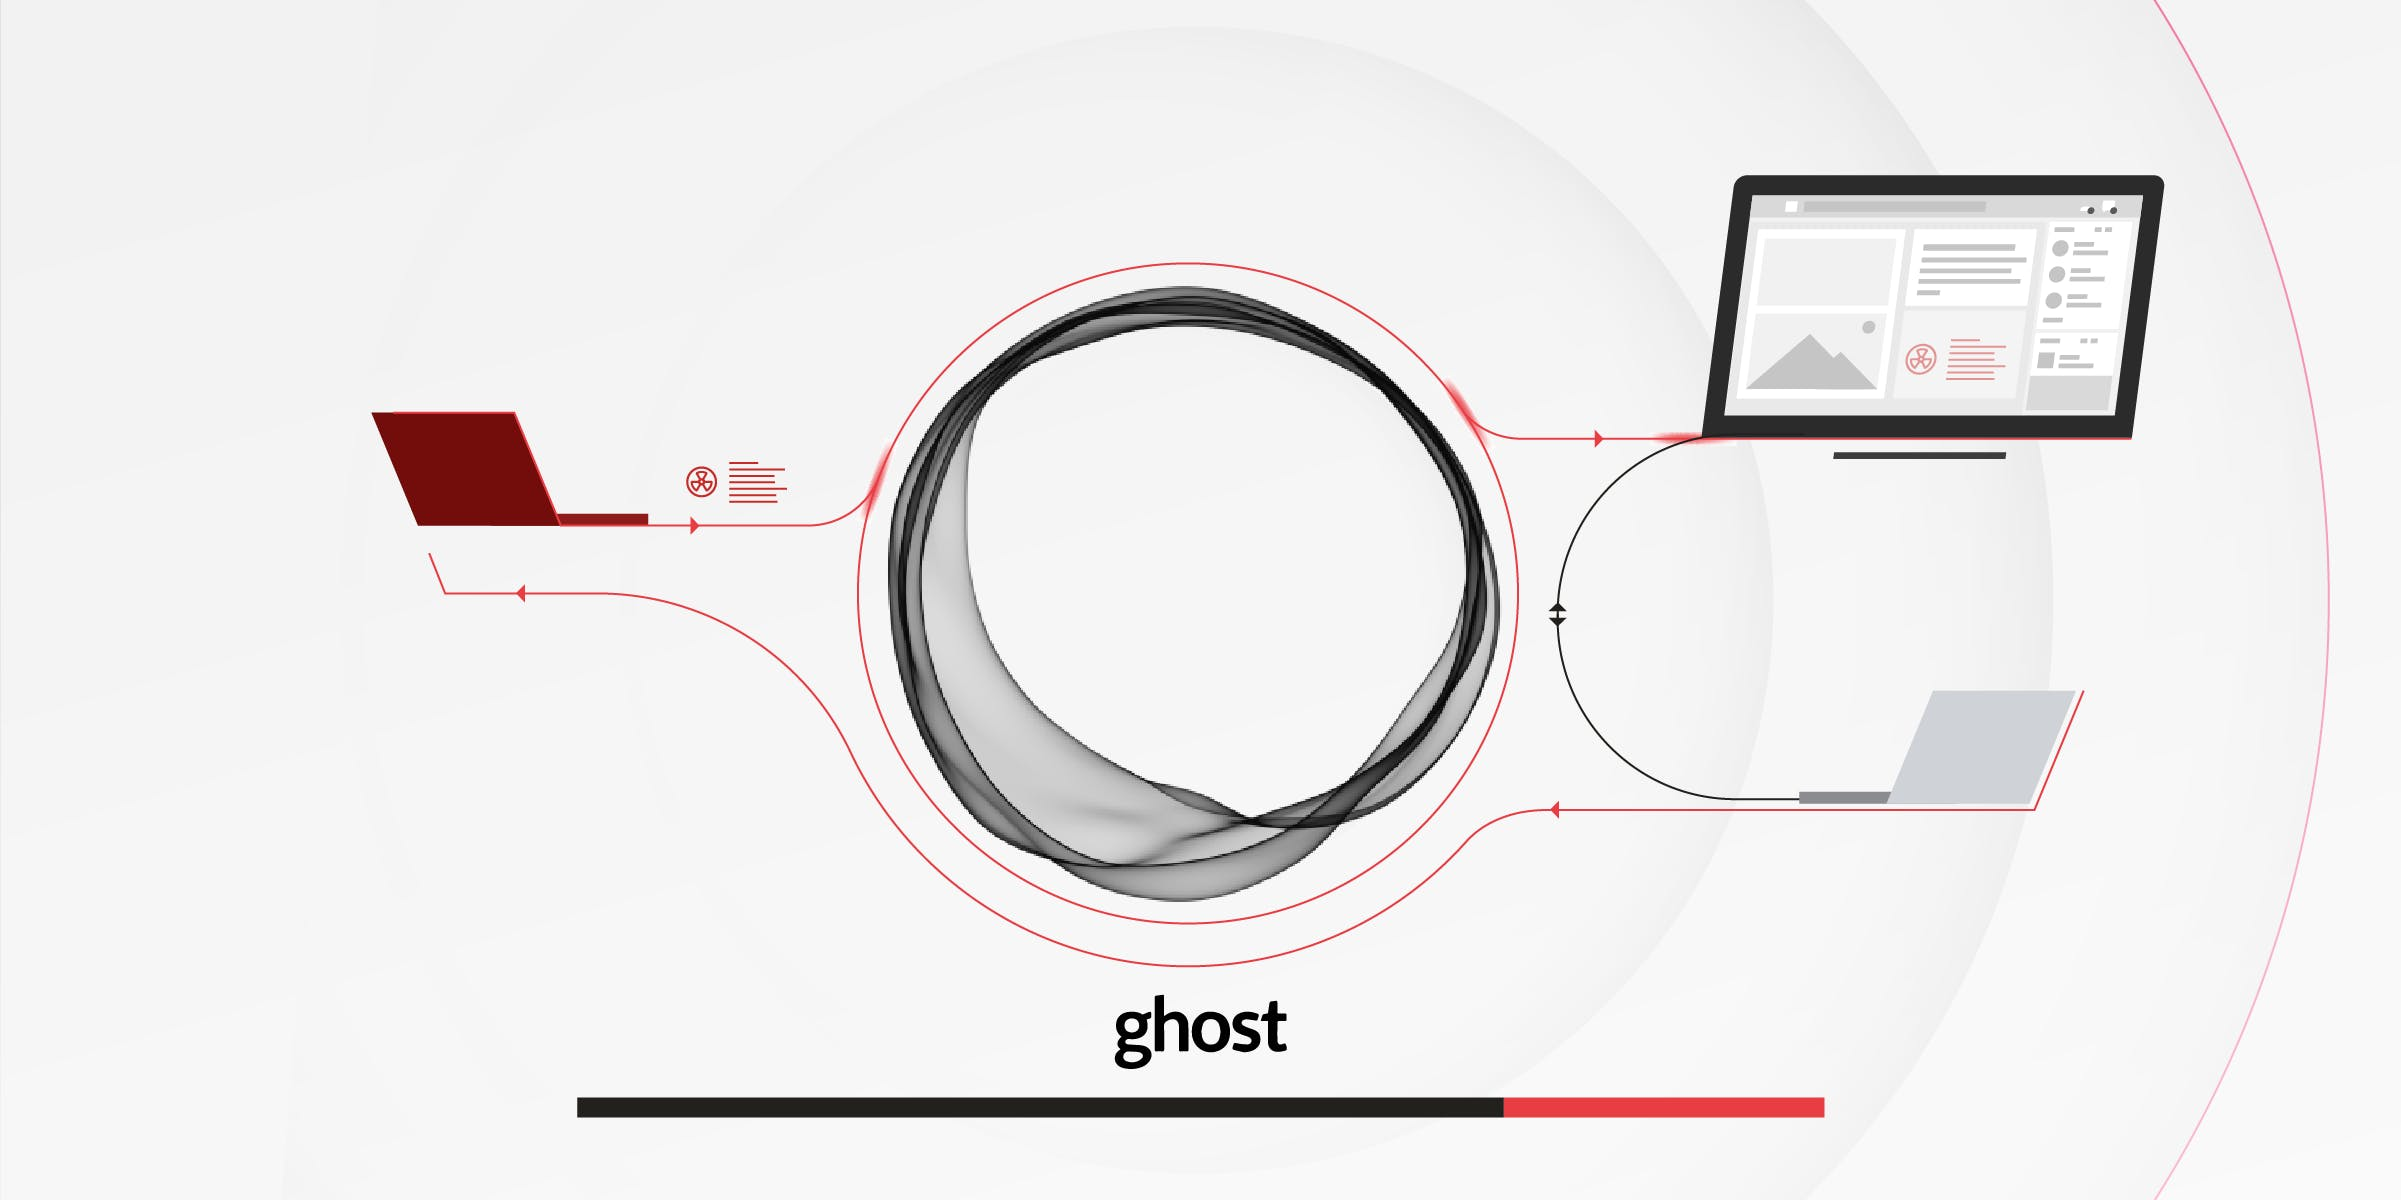 An unauthenticated attacker compromises a Ghost user